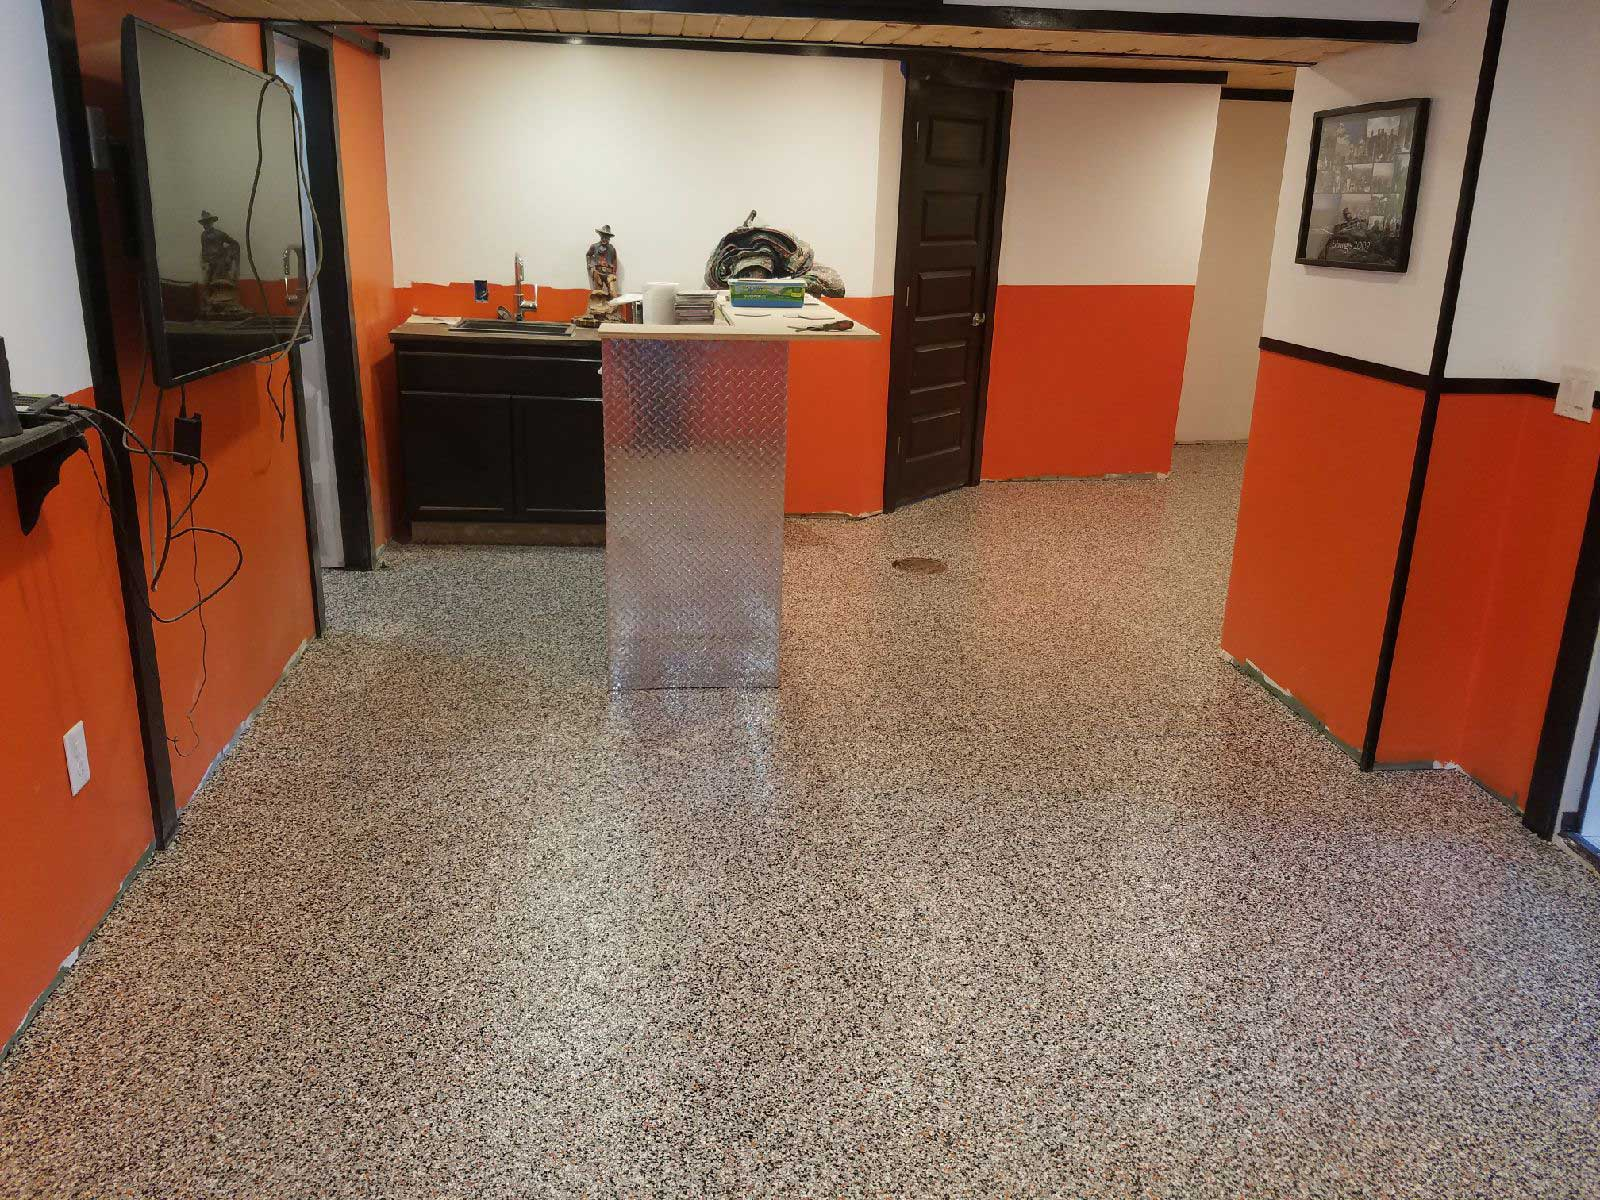 nj jersey gallery installers polyaspartic new coatings gorilla floor in coating garage epoxy